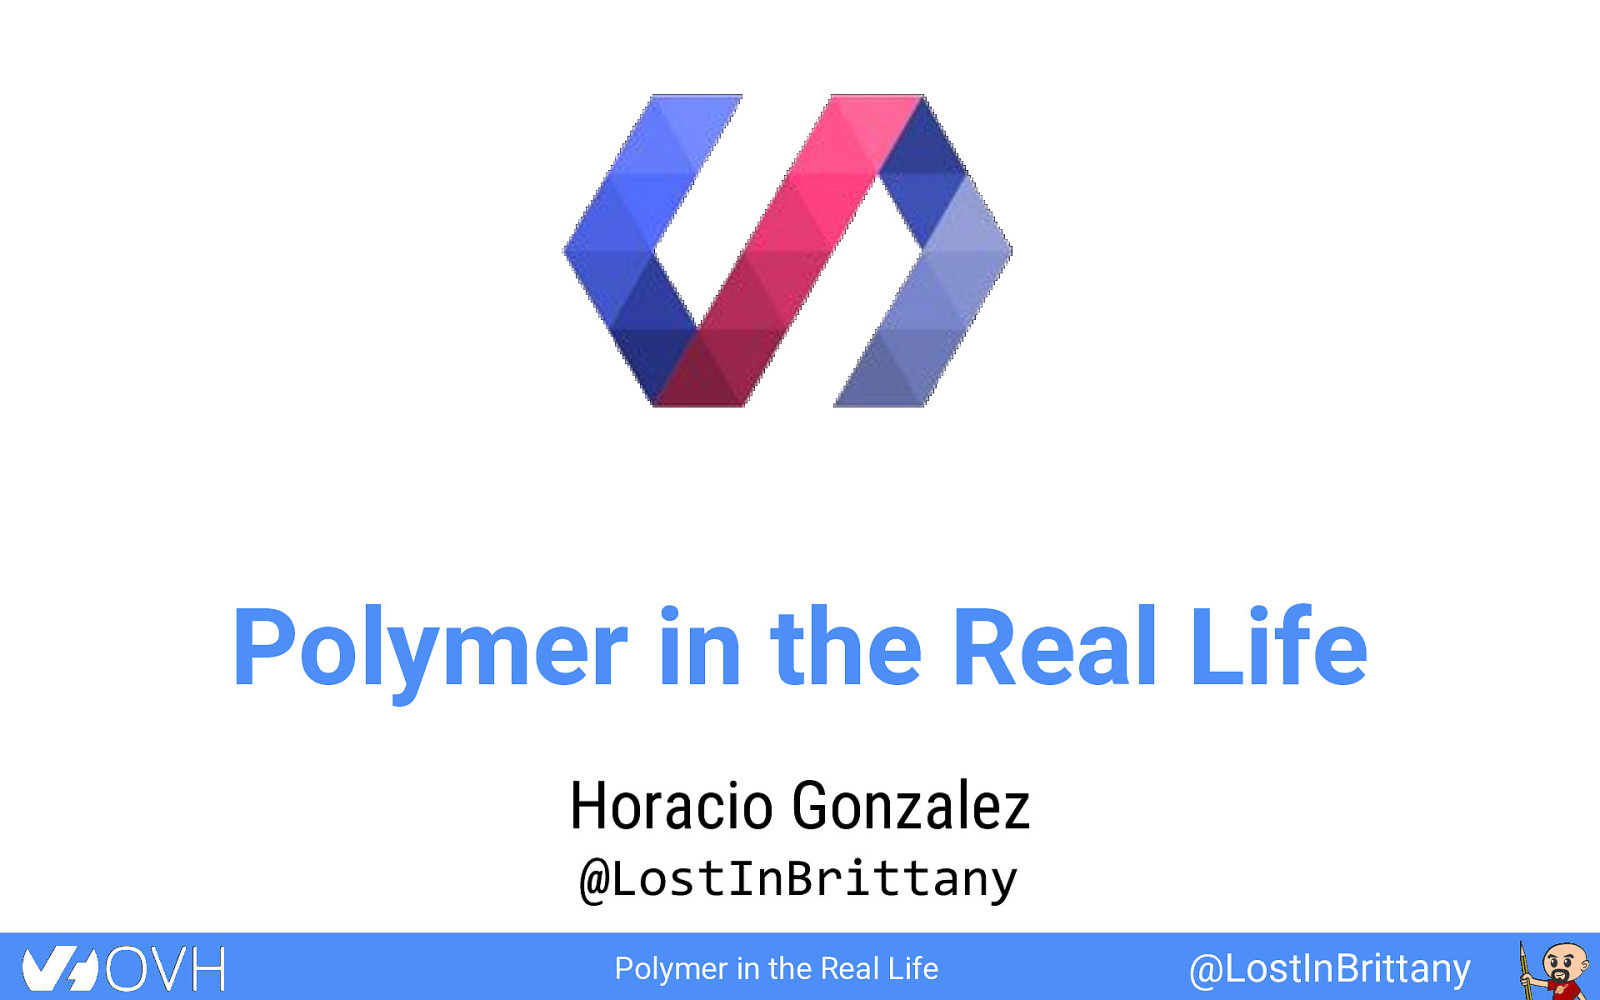 Polymer in the Real Life